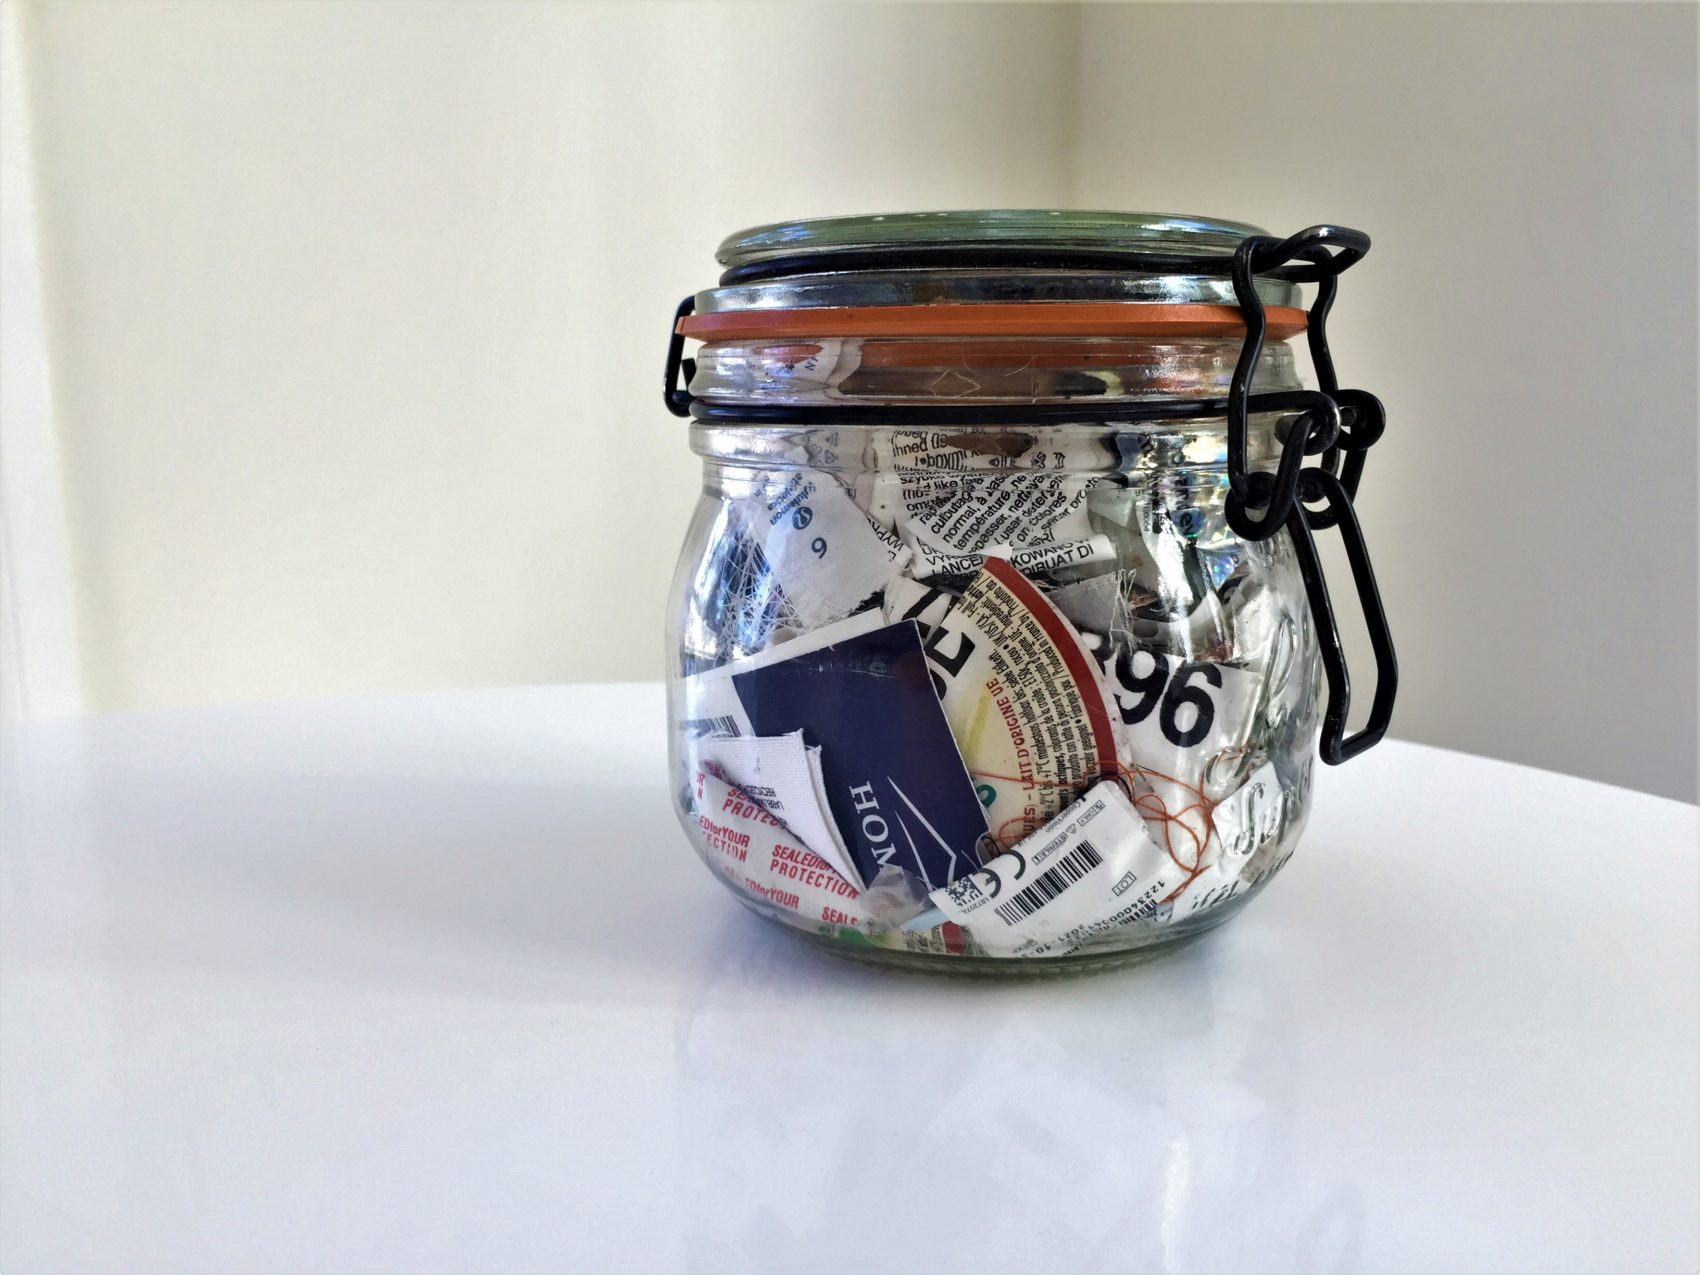 Bea Johnson and the rest of her zero-waste family are able to fit their yearly trash into a small jar. (Courtesy of Bea Johnson)